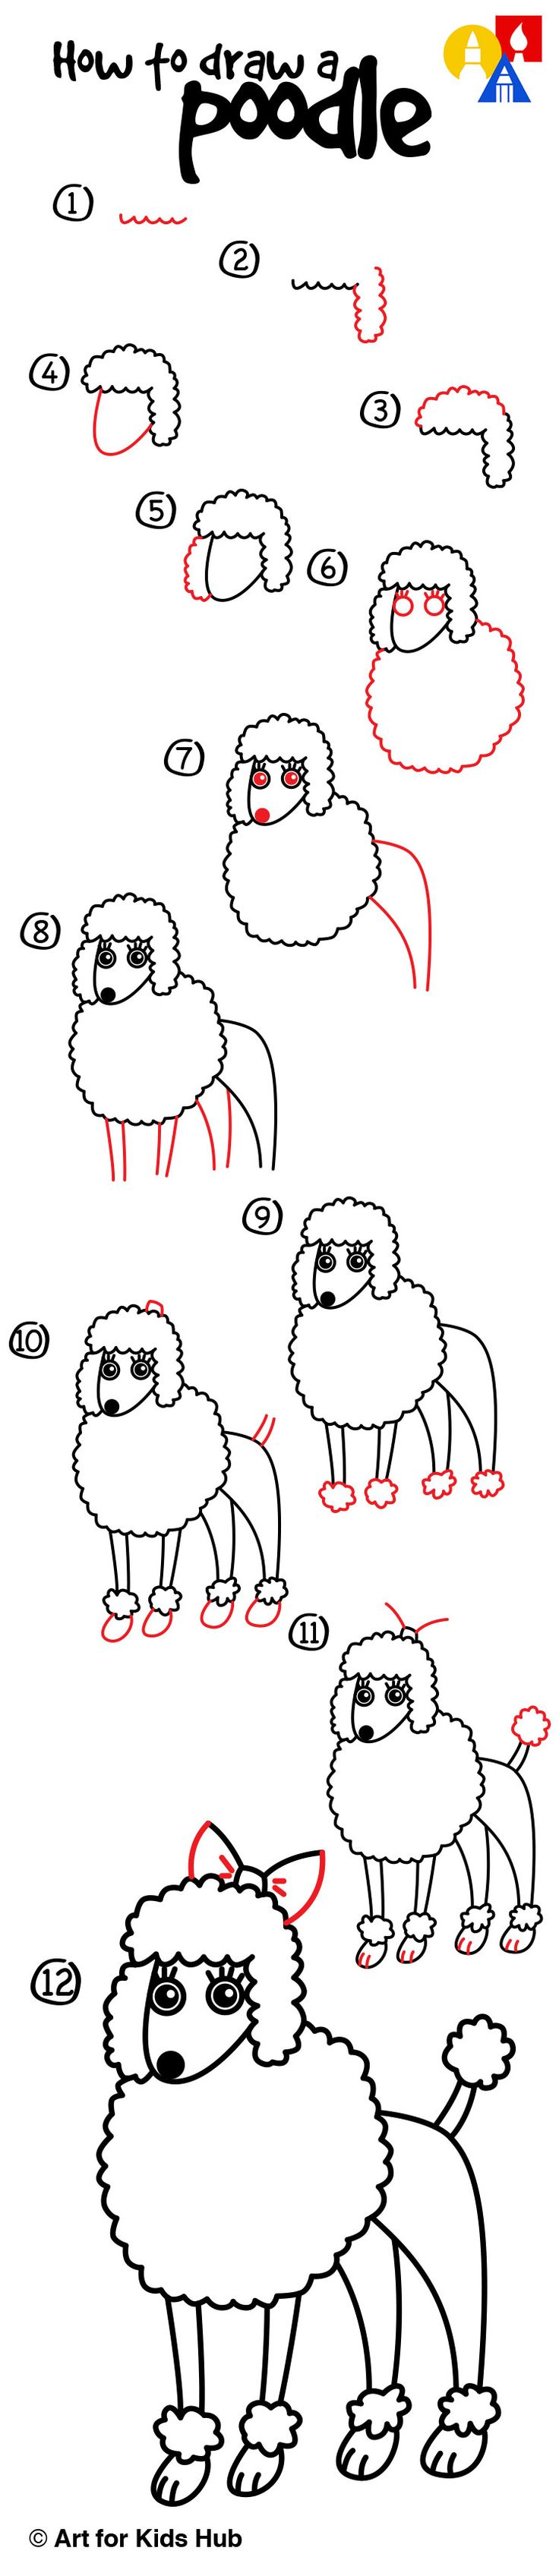 How to draw a super cute poodle!